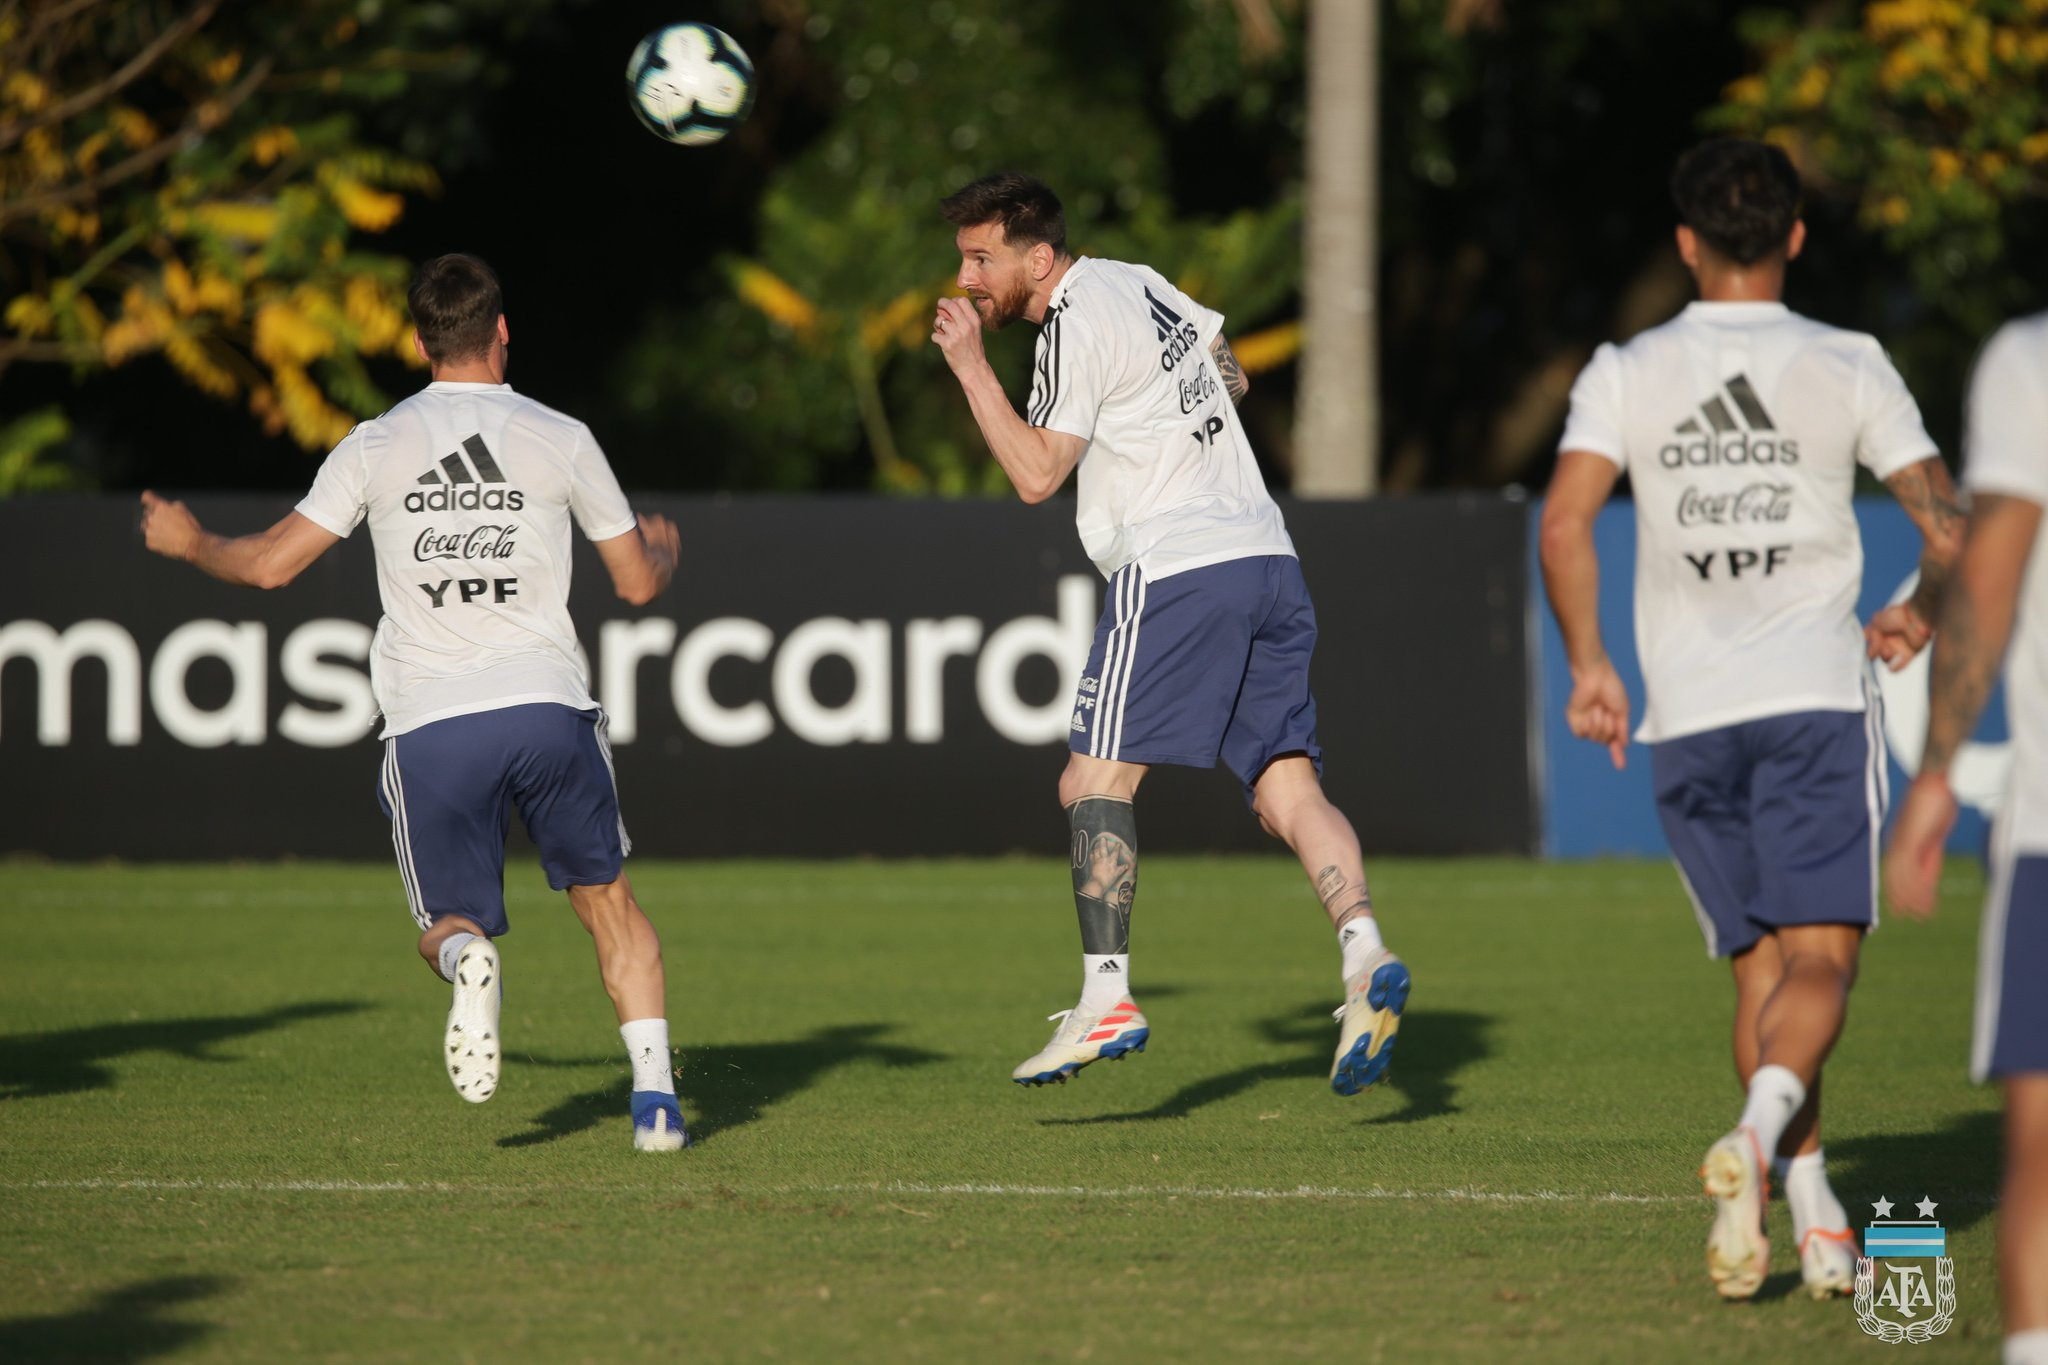 Argentina trained before the great game with Brazil